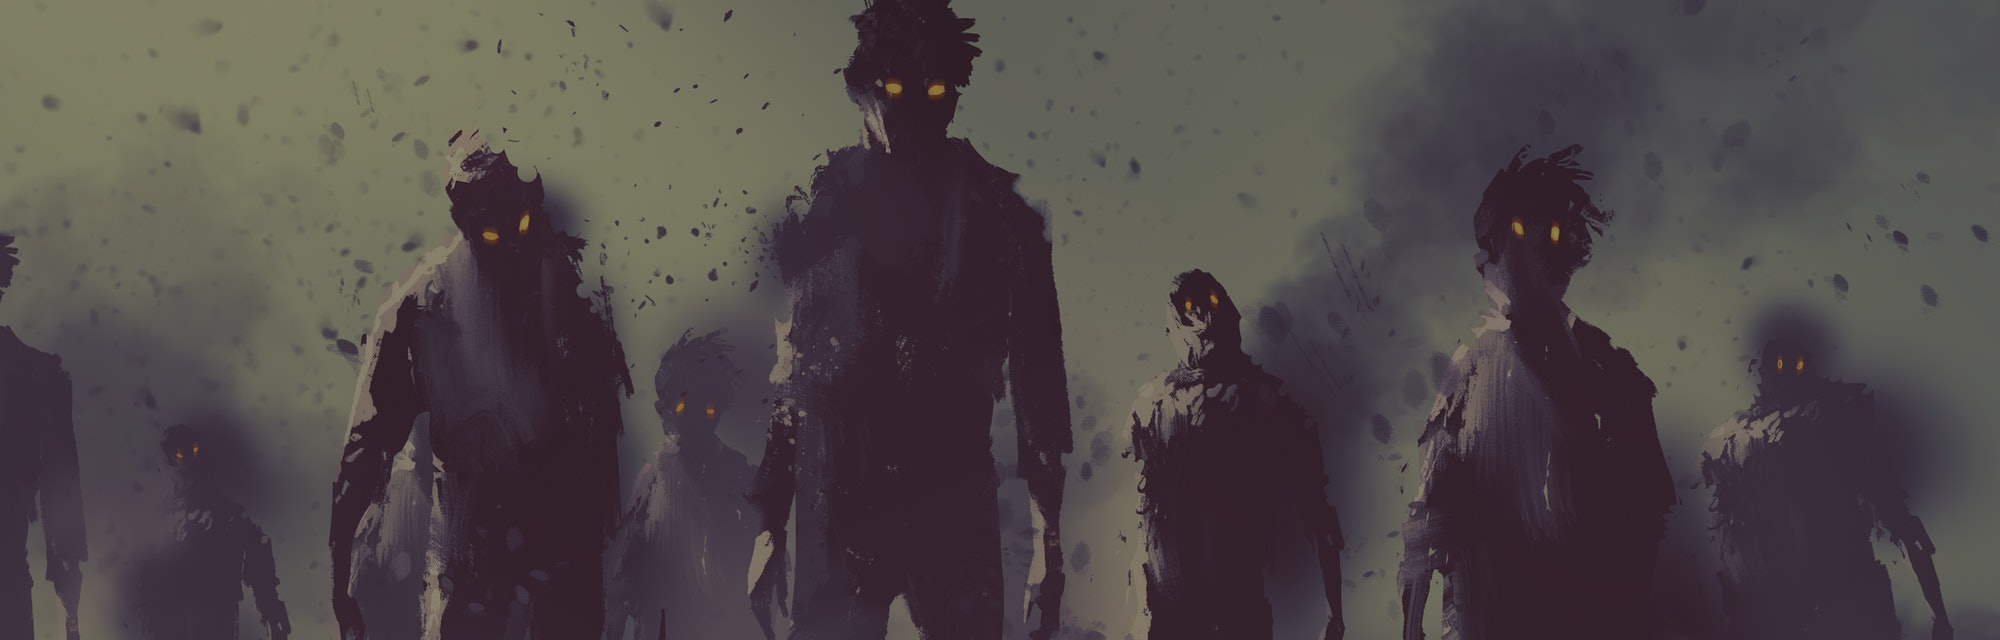 zombie crowd walking at night,halloween concept,illustration painting